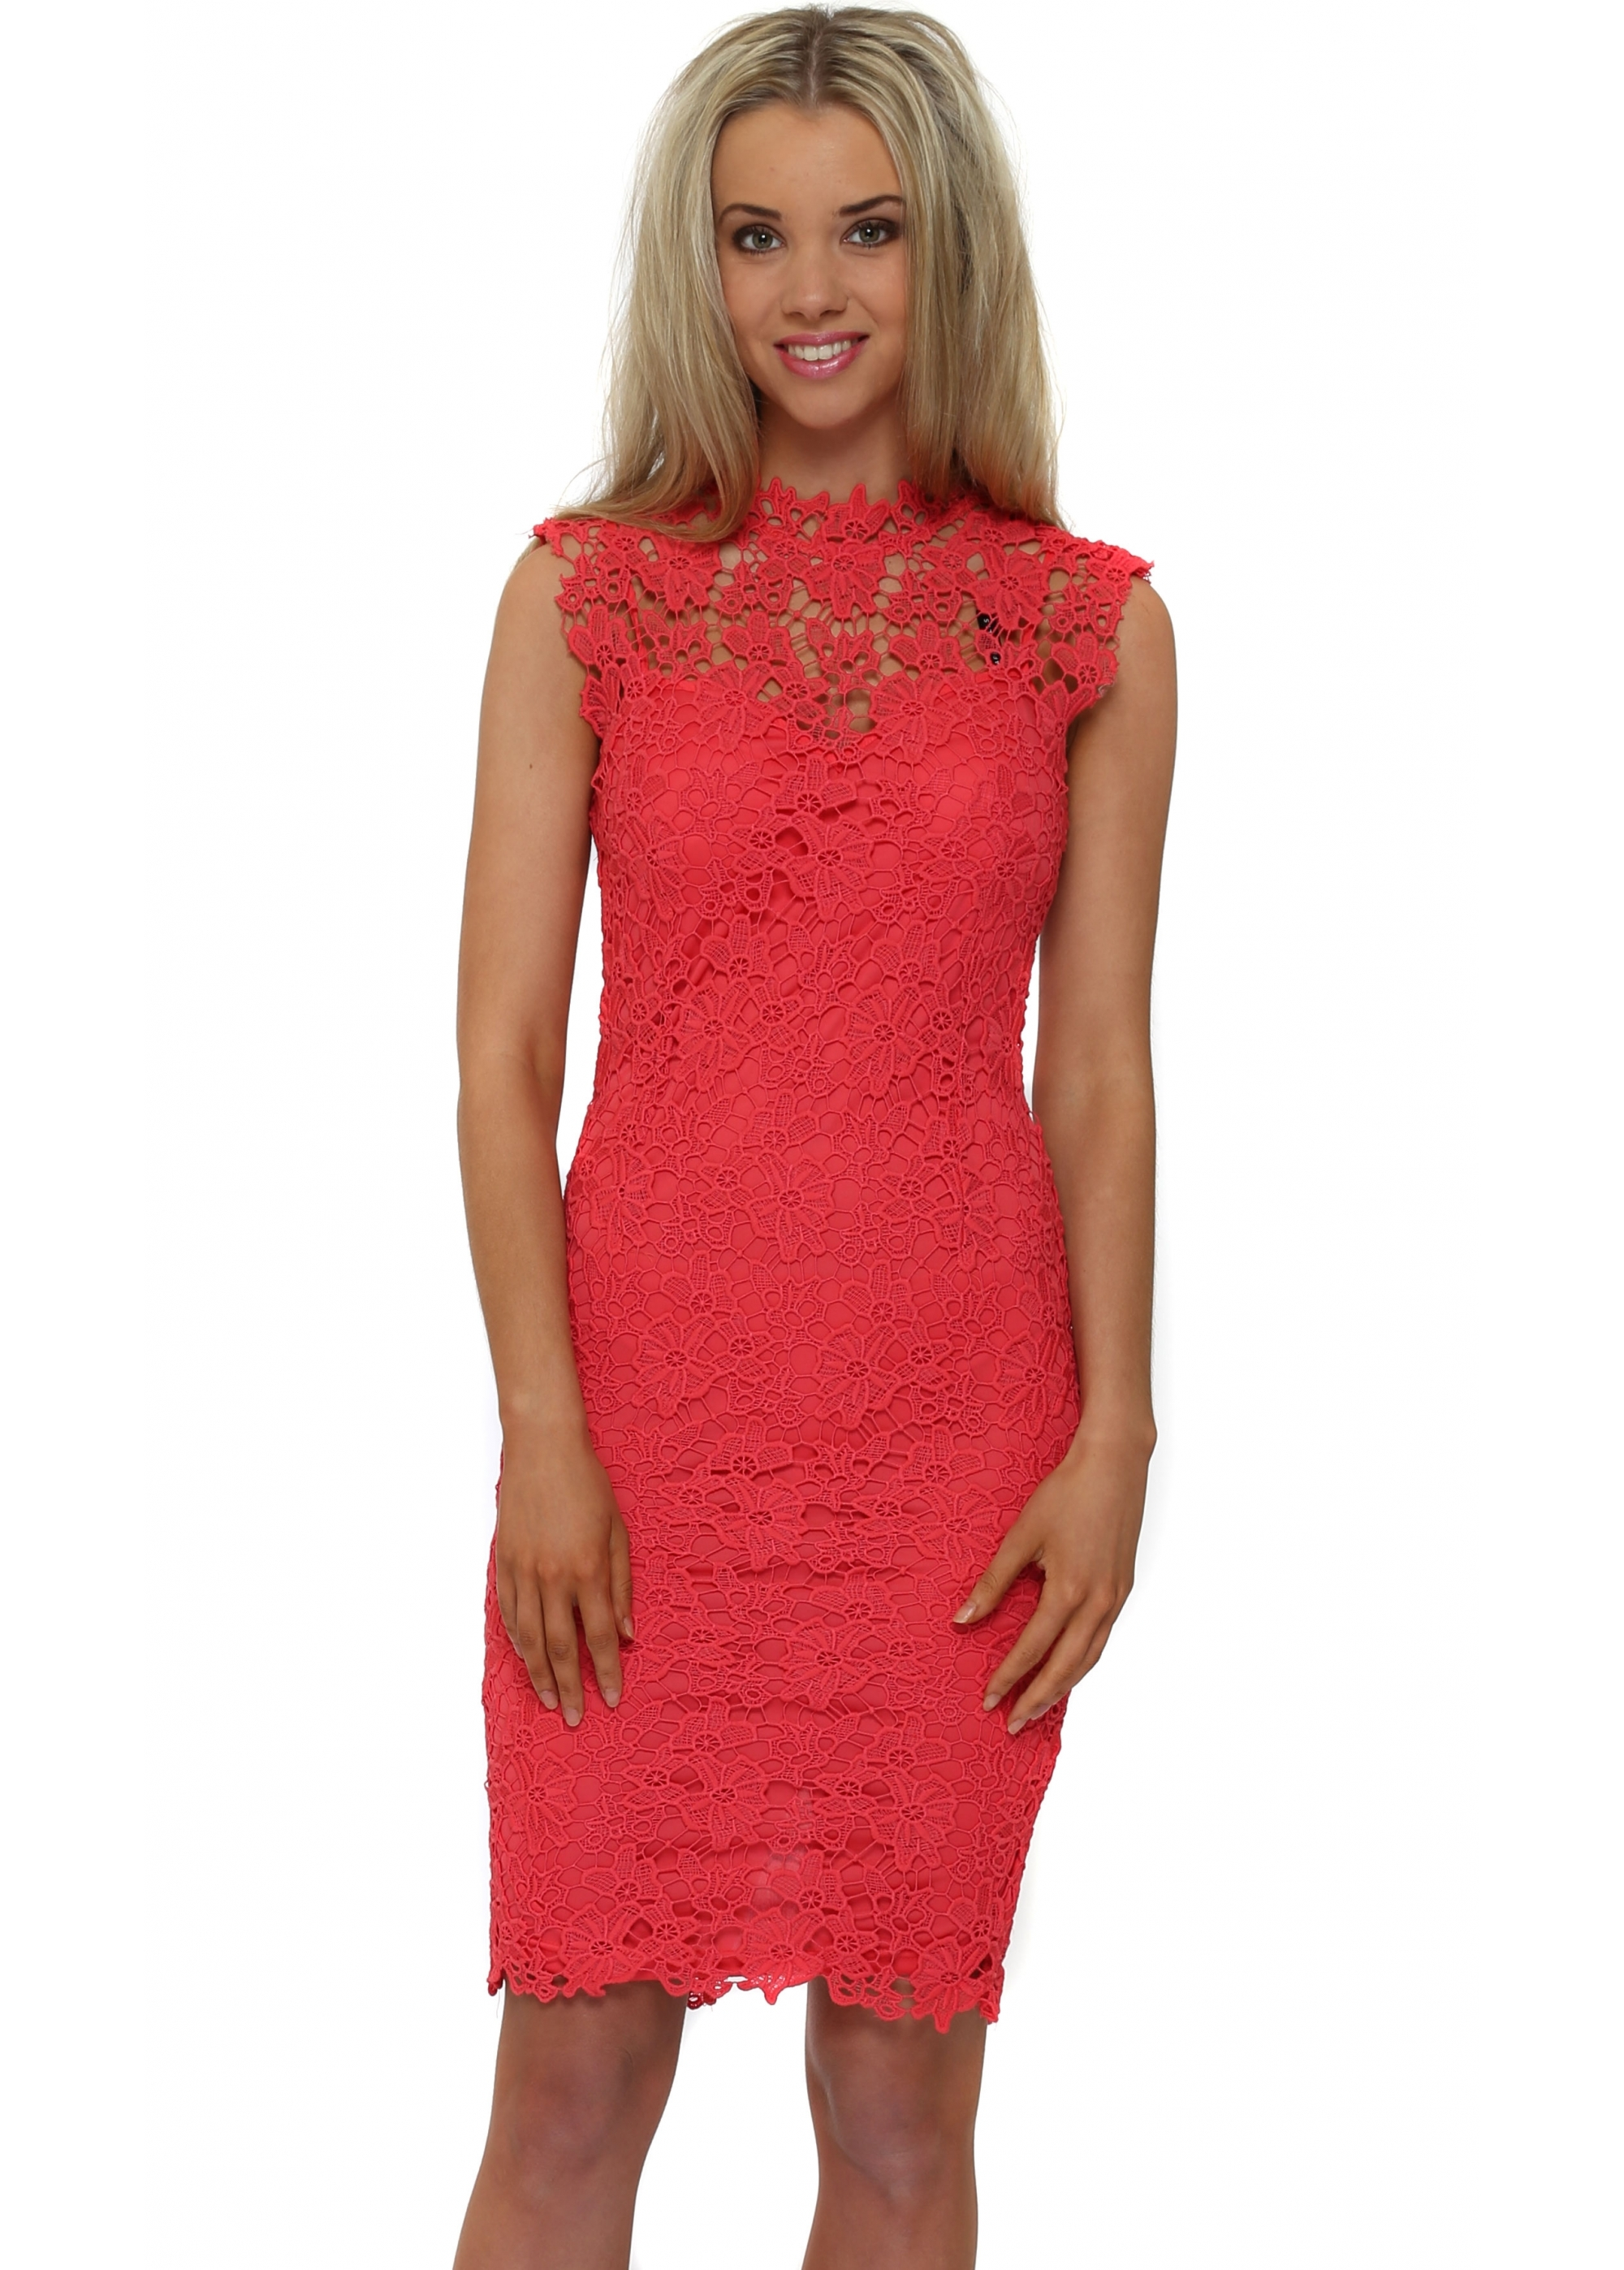 3daa5a006bd4 Paper Dolls Chloe Lewis Dress - Coral Crochet Lace Dress